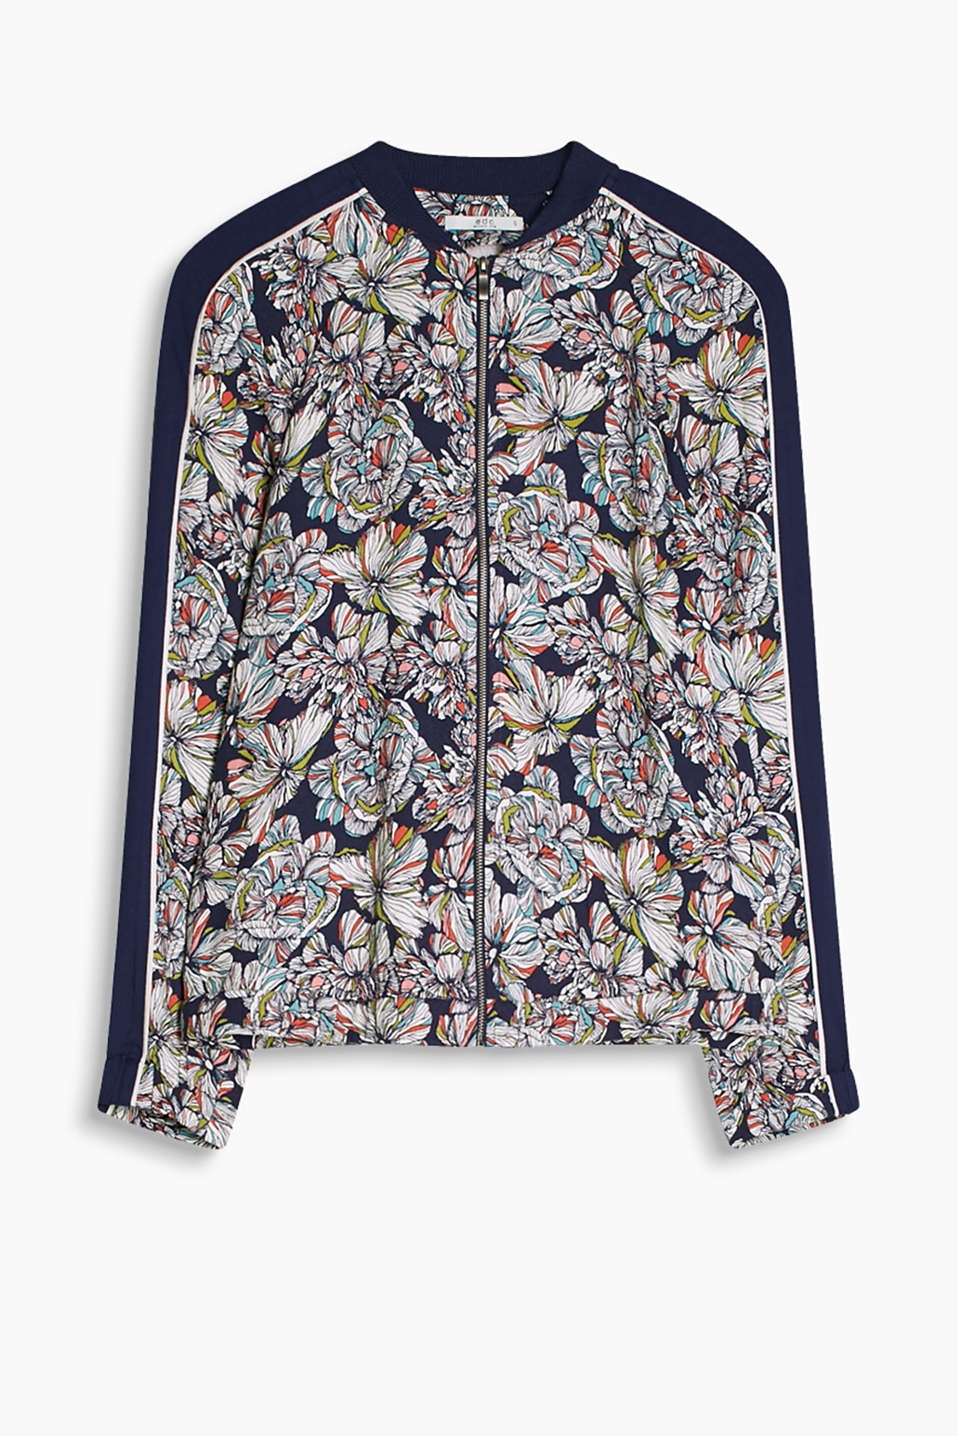 We love it! Flowing bomber jacket with evocative floral print